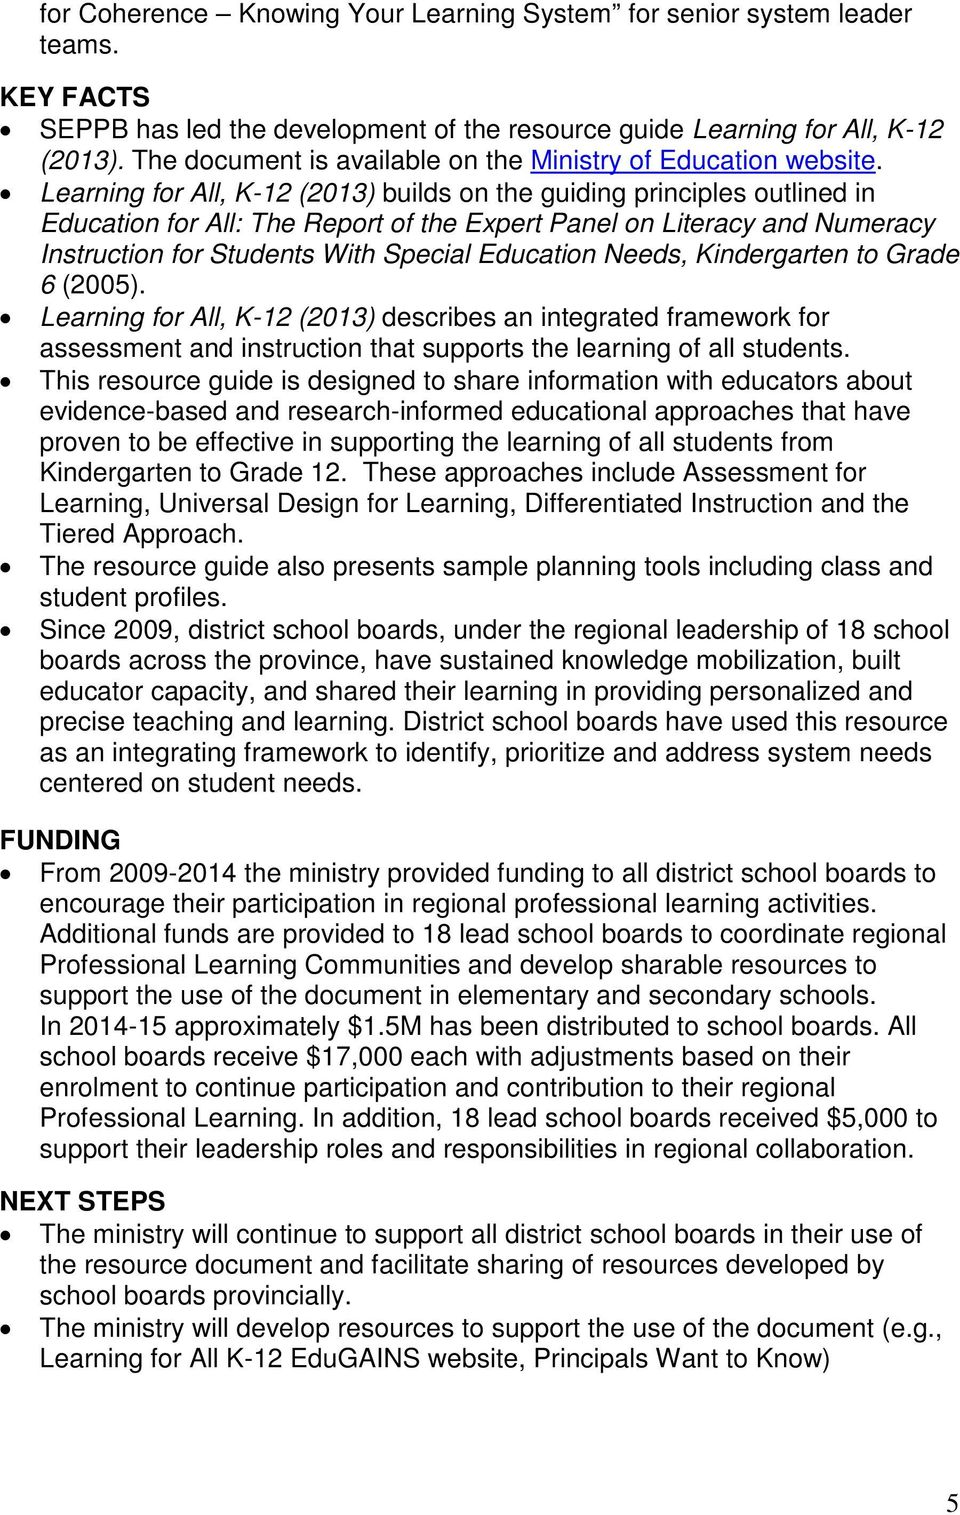 Learning for All, K-12 (2013) builds on the guiding principles outlined in Education for All: The Report of the Expert Panel on Literacy and Numeracy Instruction for Students With Special Education